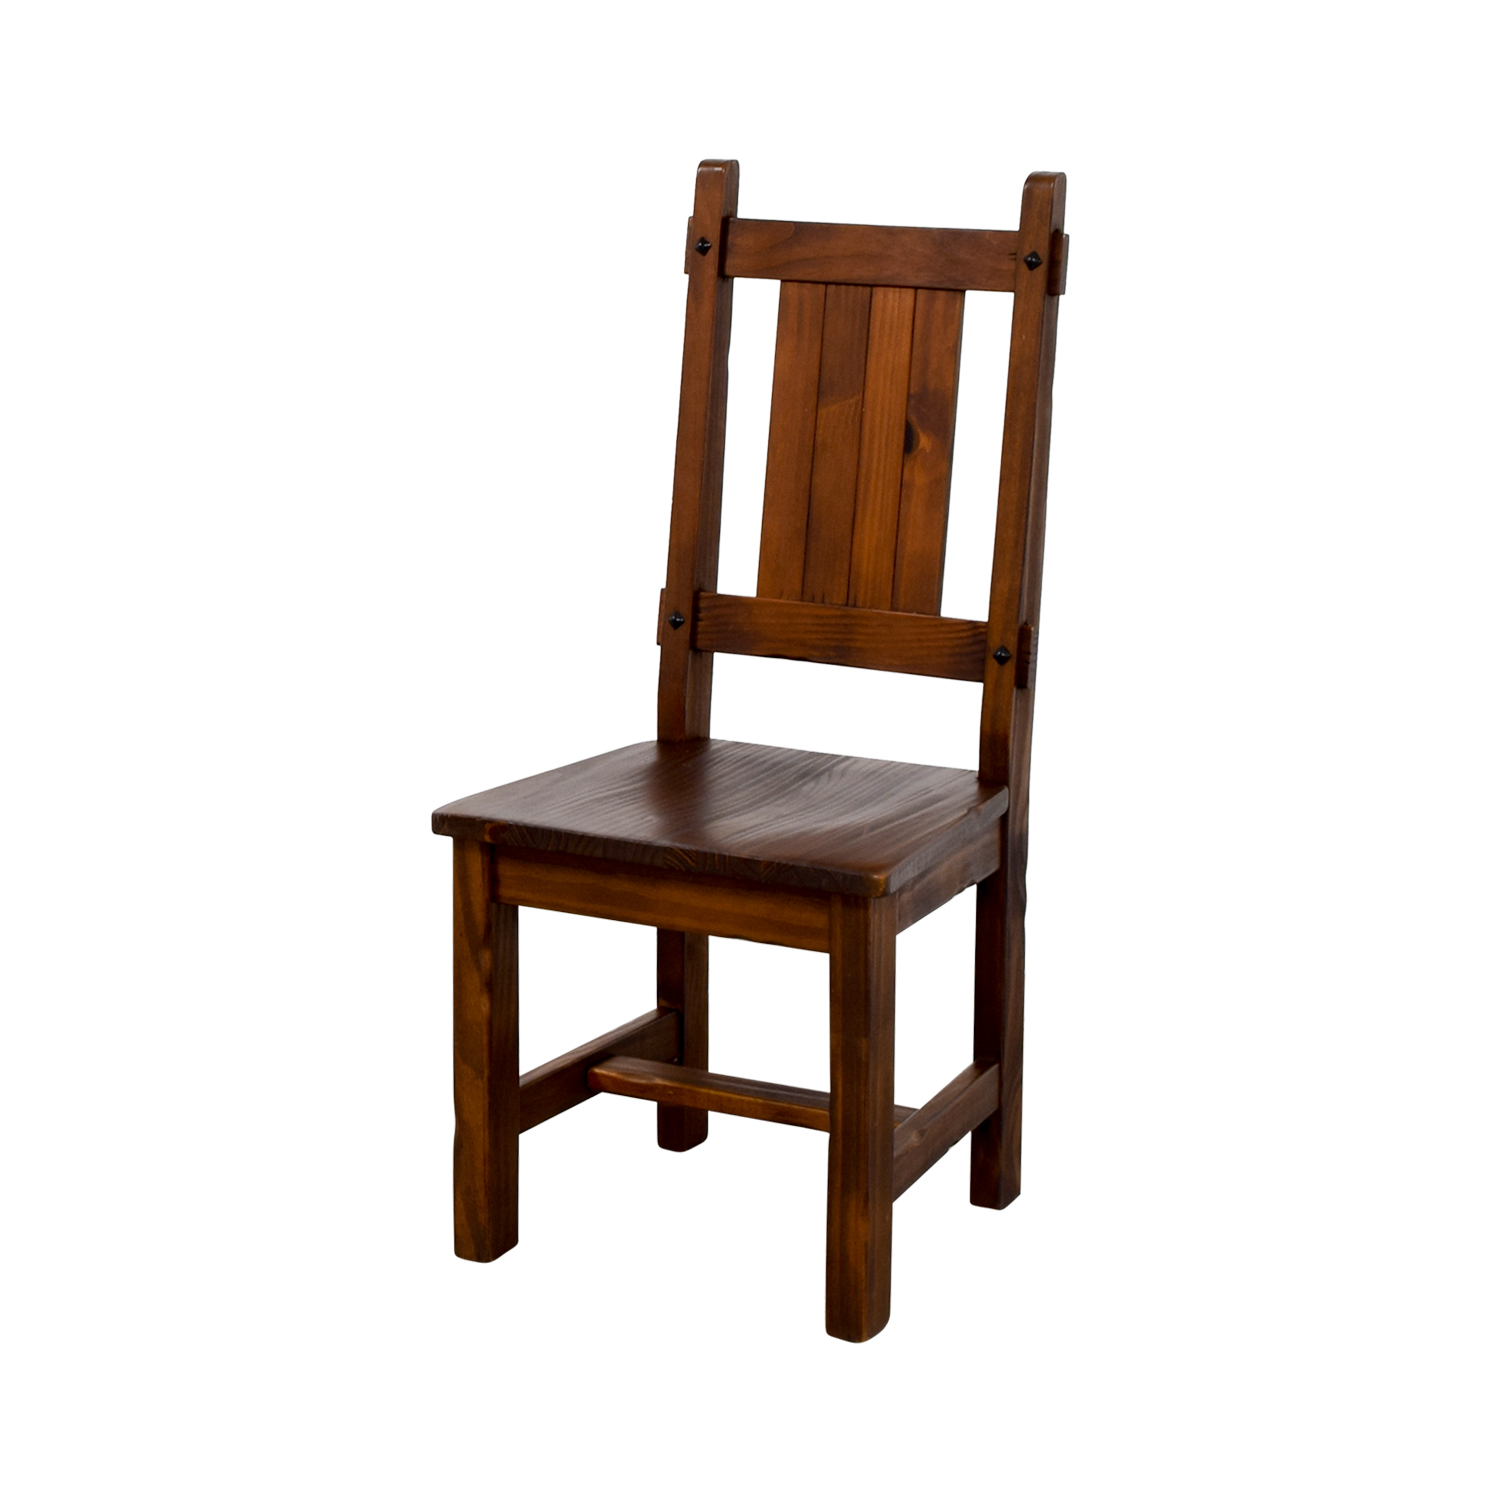 Stickley Stickley Mission Chair dimensions